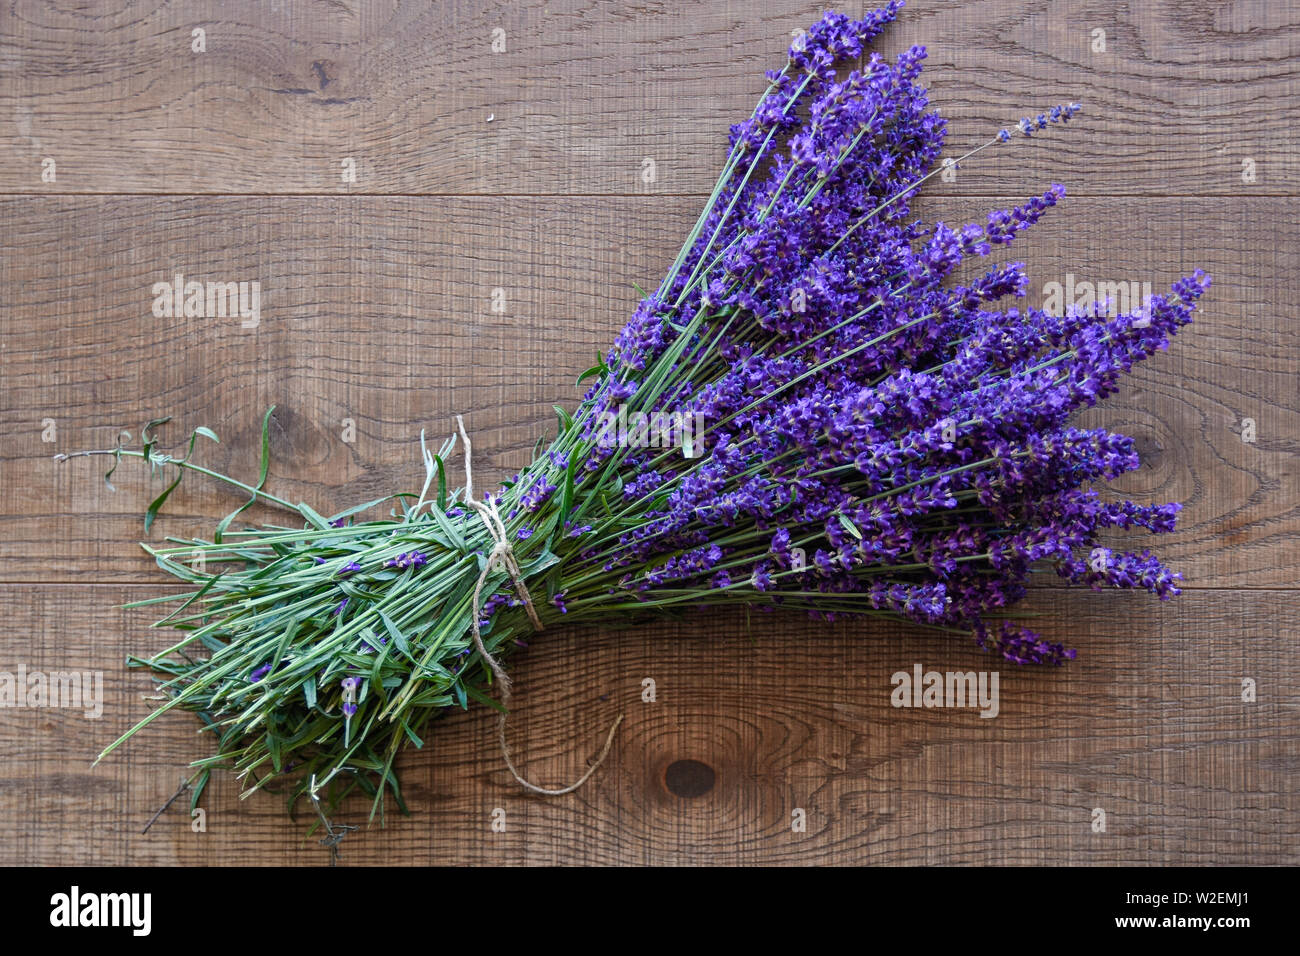 bunch of lavender on brown wood, isolated flower - Stock Image